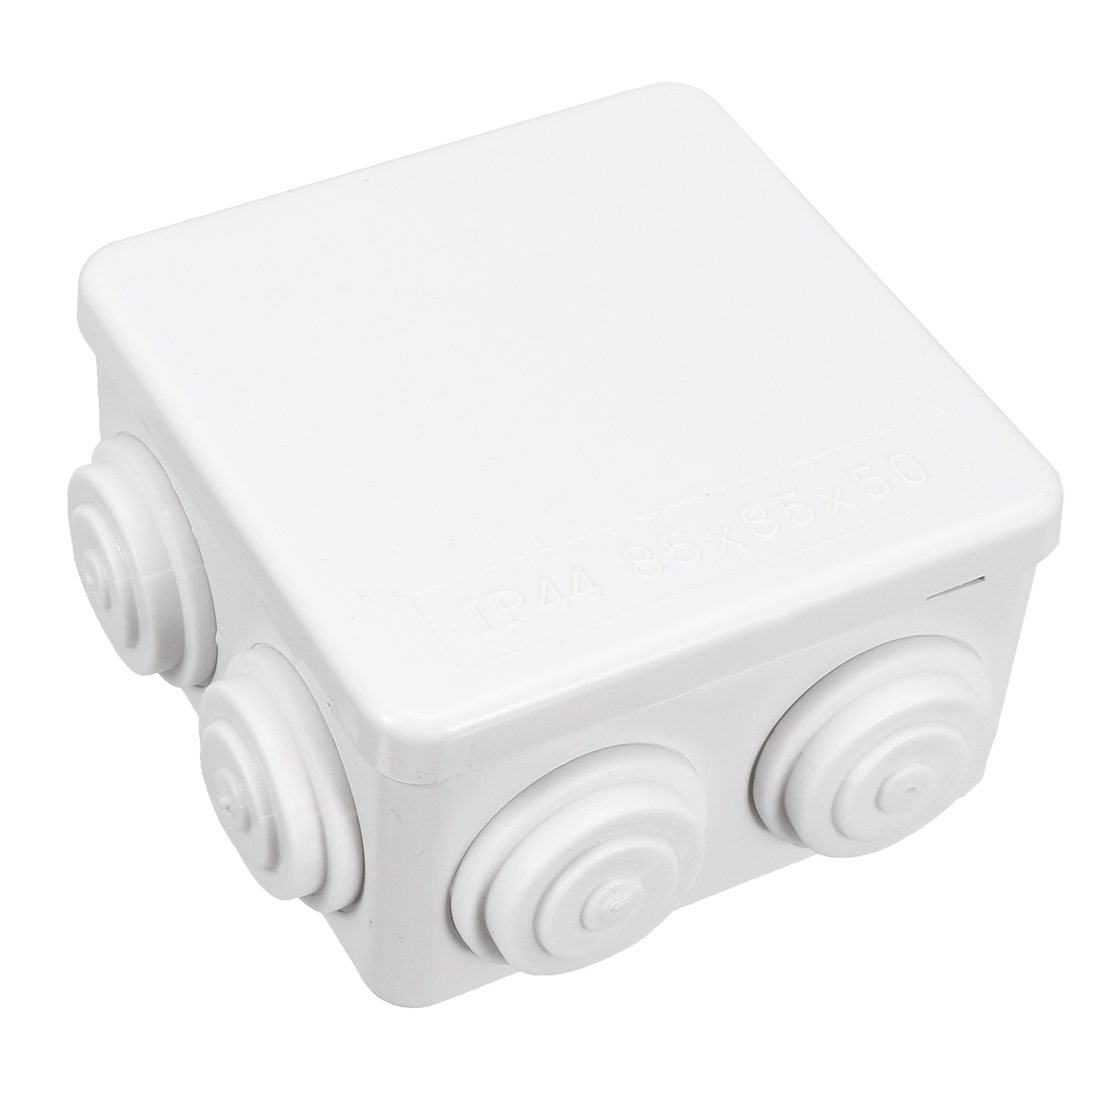 2 Pcs ABS IP44 Waterproof Square Junction Box Plain Press on Lid 85x85x50mm